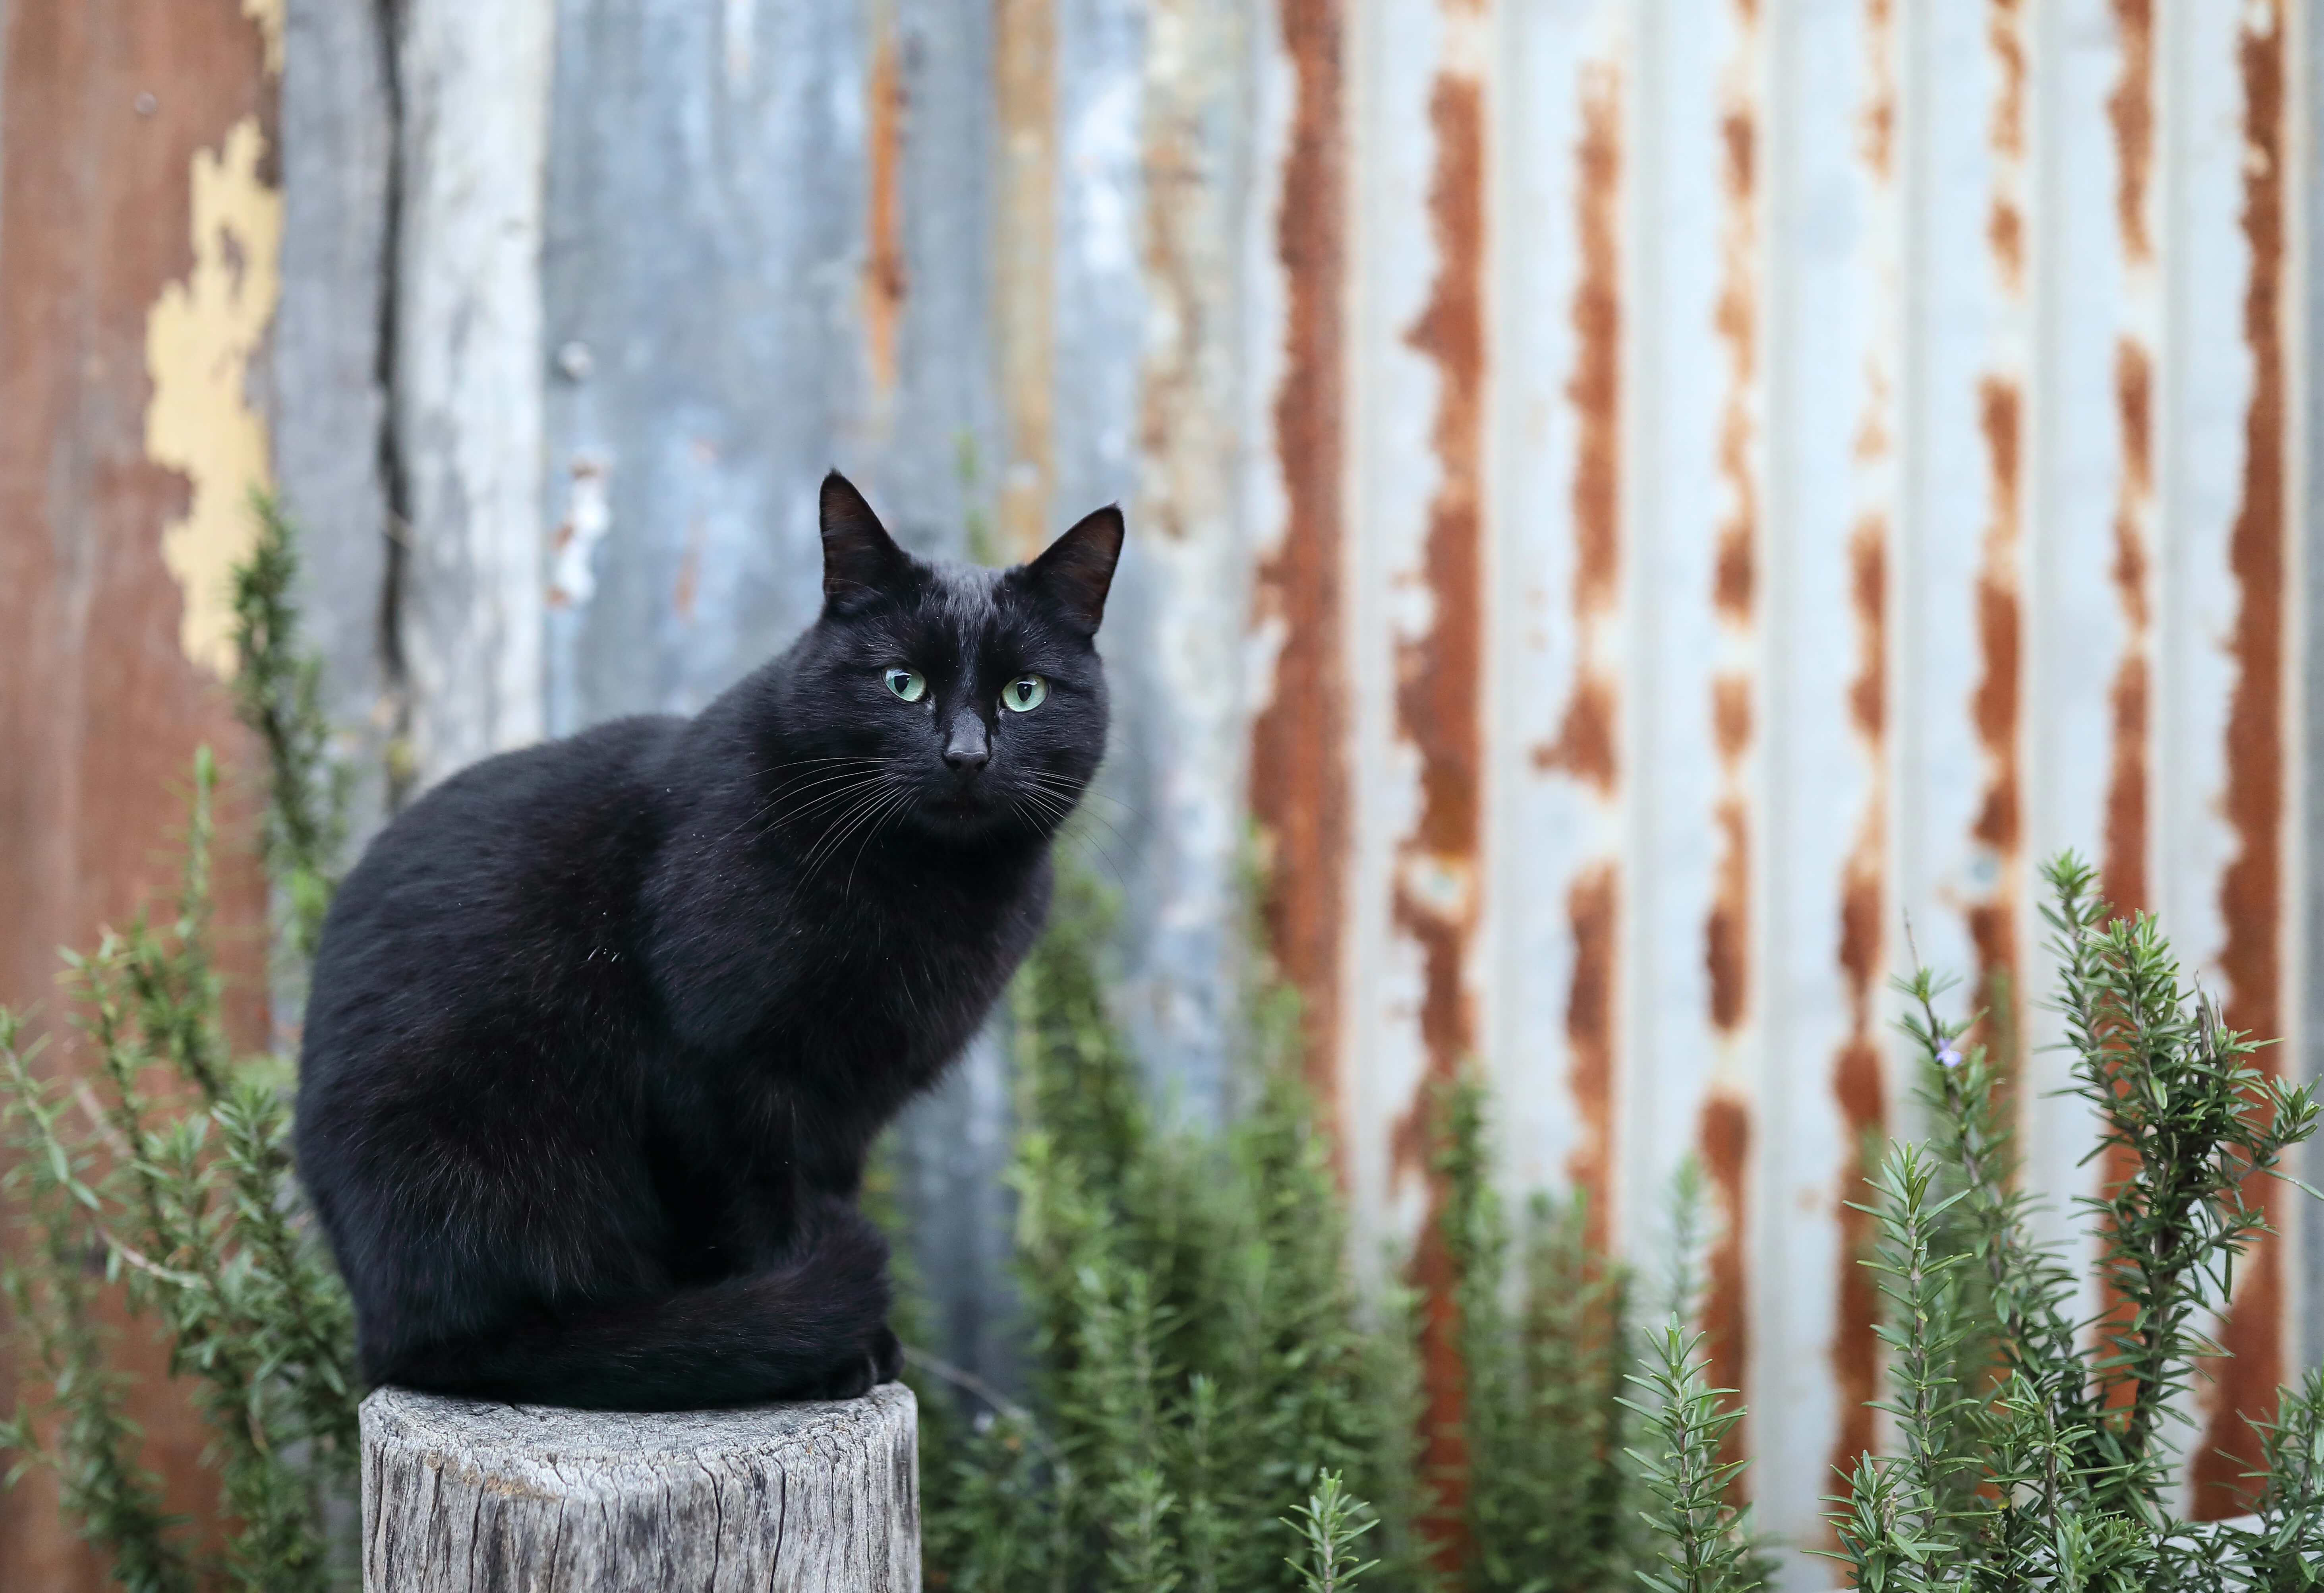 Photo of black cat sitting on tree stump next to shed taken by Dr. Chris Brown